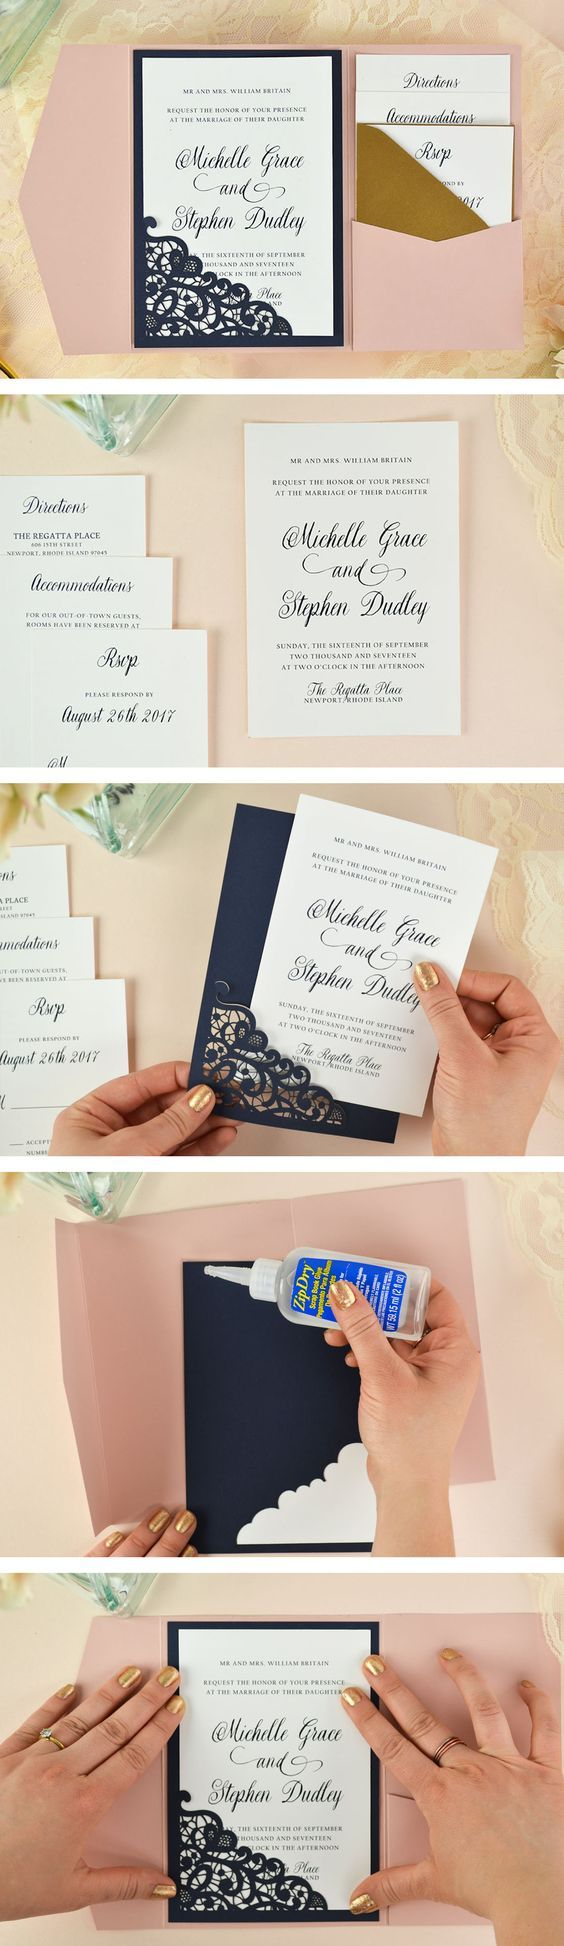 How to DIY Pocket Invitations the Easy